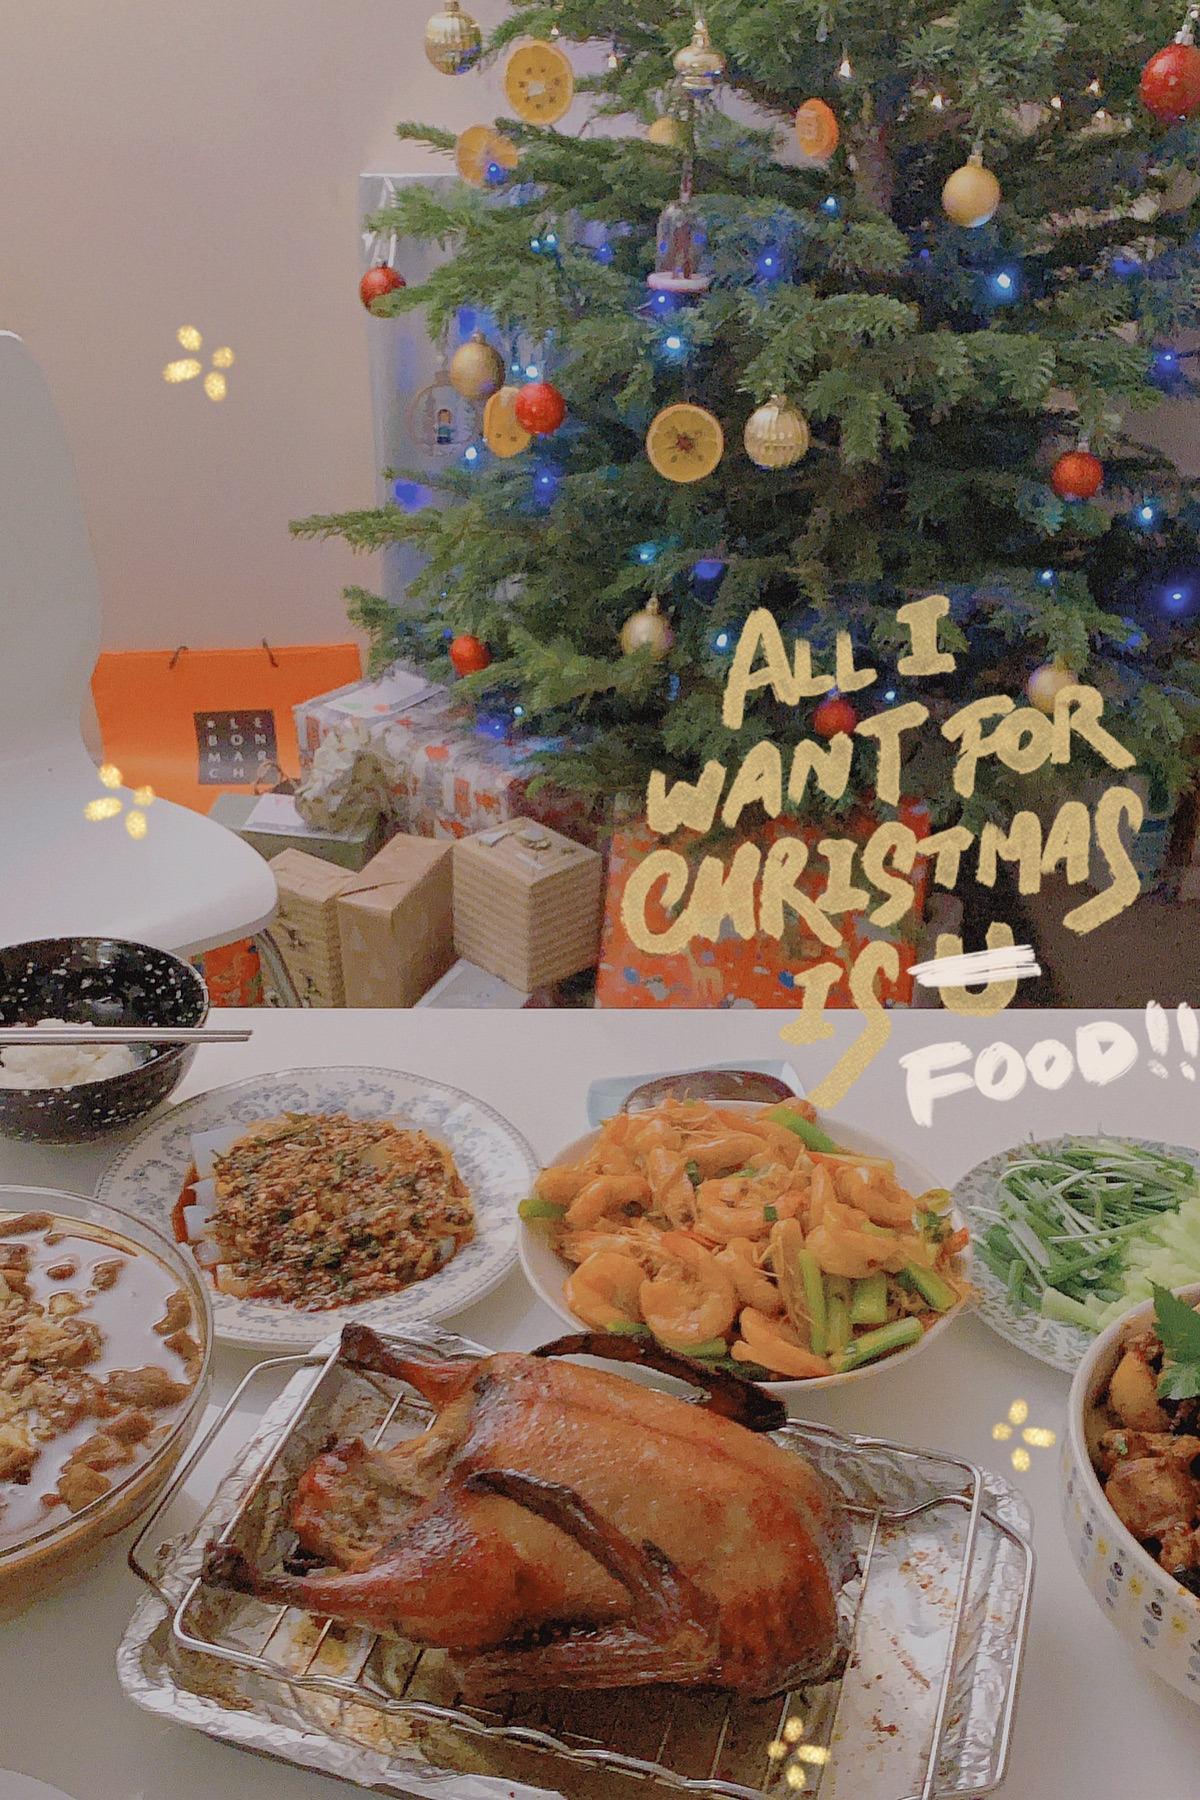 All I want for Christmas is…🍽